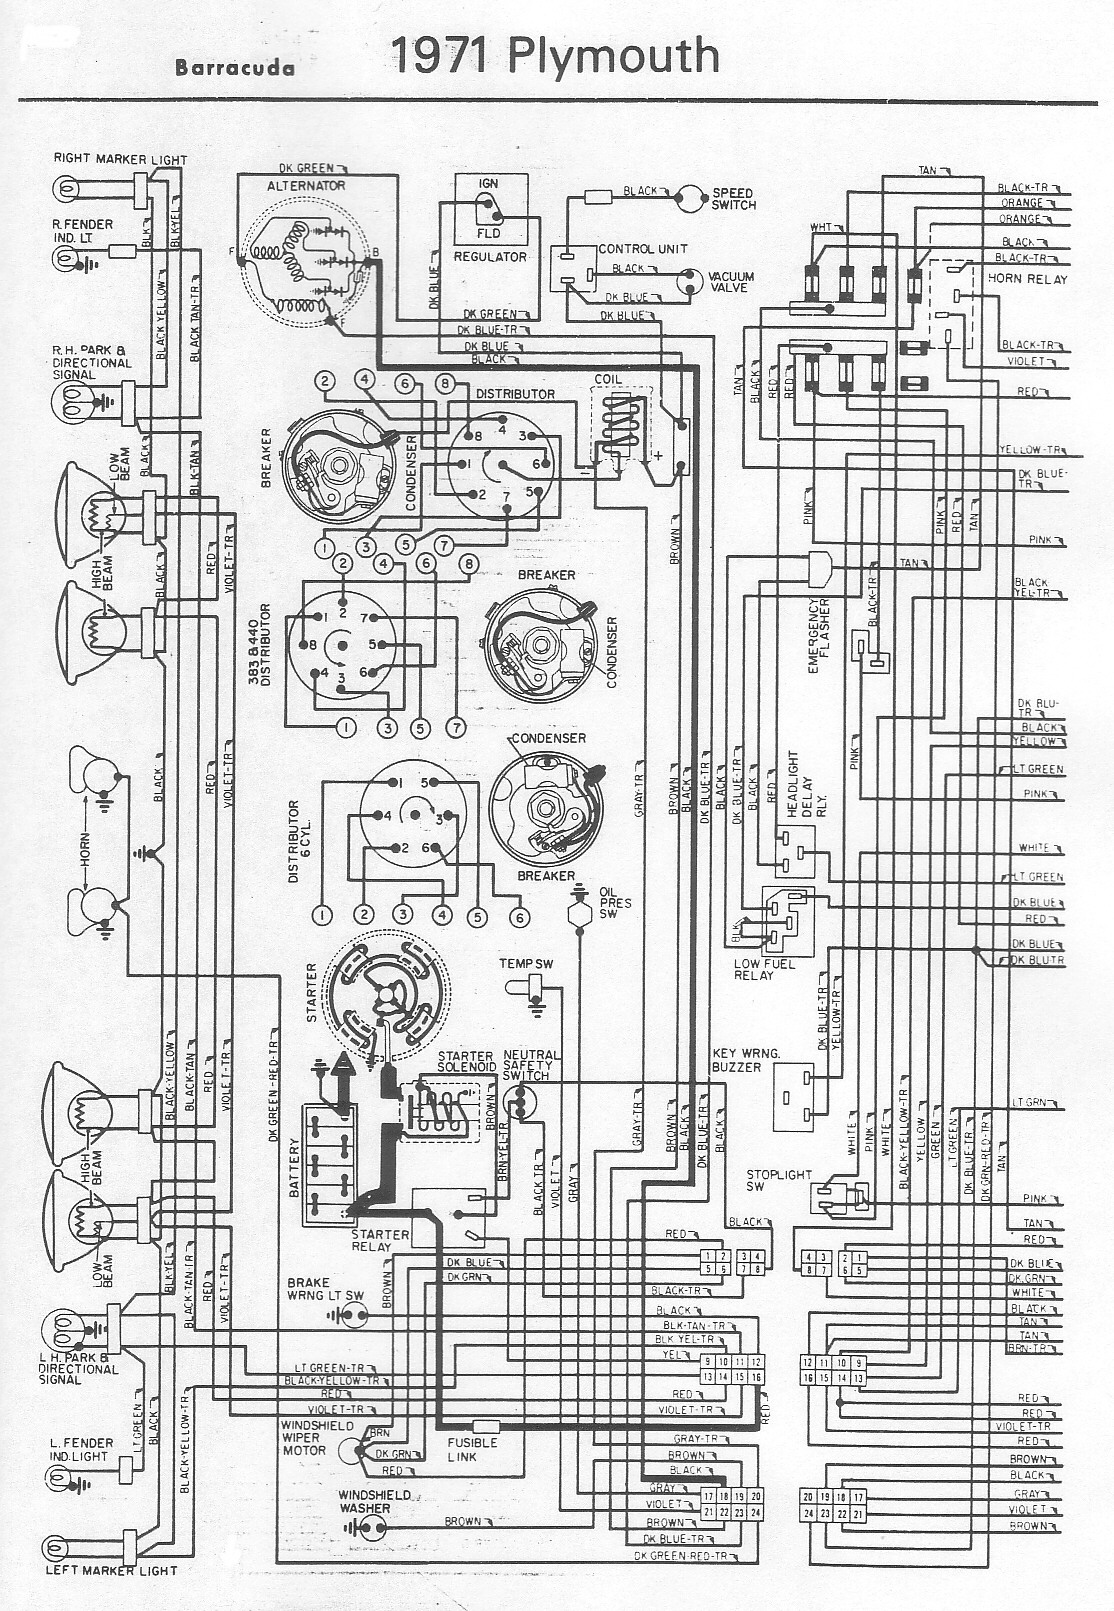 1971 Cuda Wiring Diagram Layout Diagrams 71 Plymouth Duster Reinvent Your U2022 Rh Kismetcars Co Uk Barracuda 1968